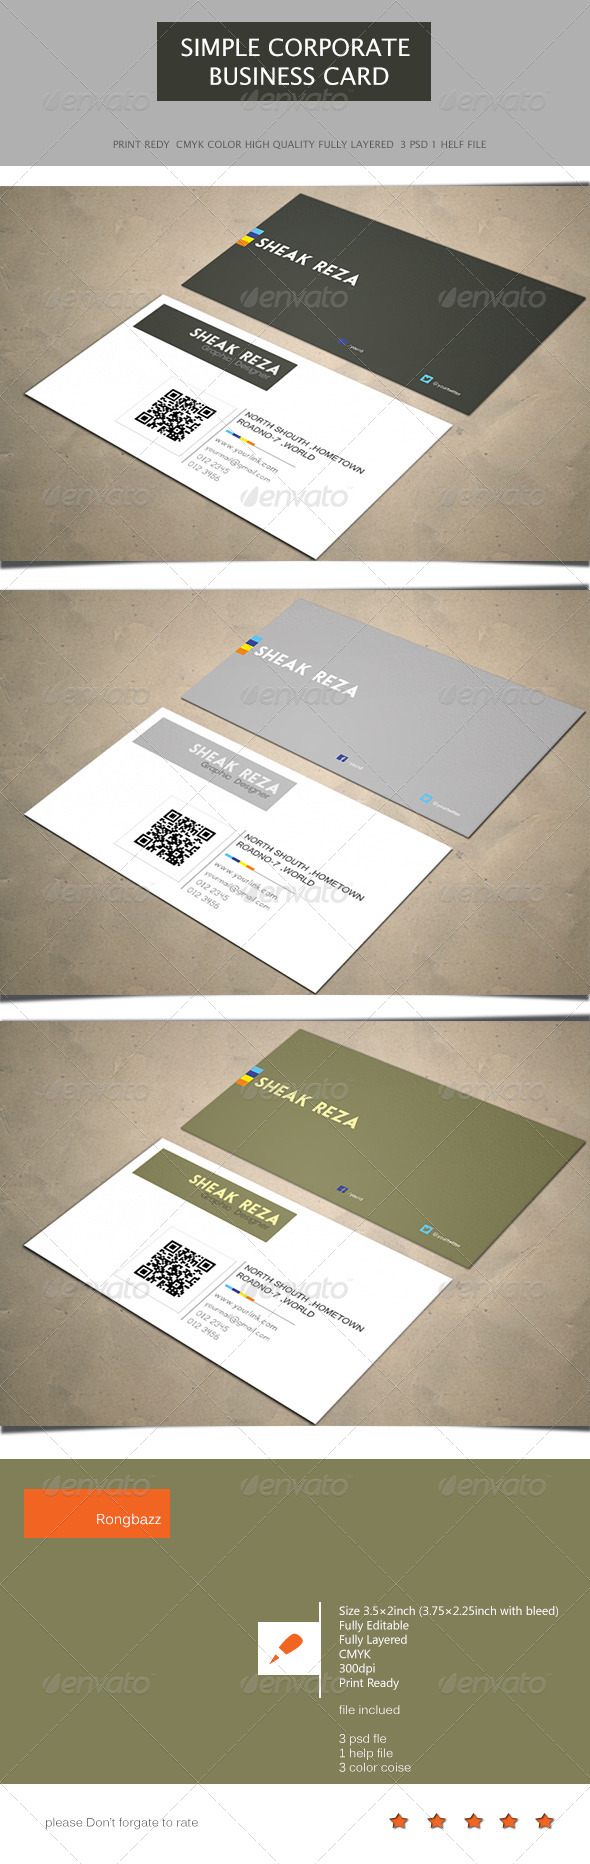 GraphicRiver Simple Corporate Business Card 1.0 6400022